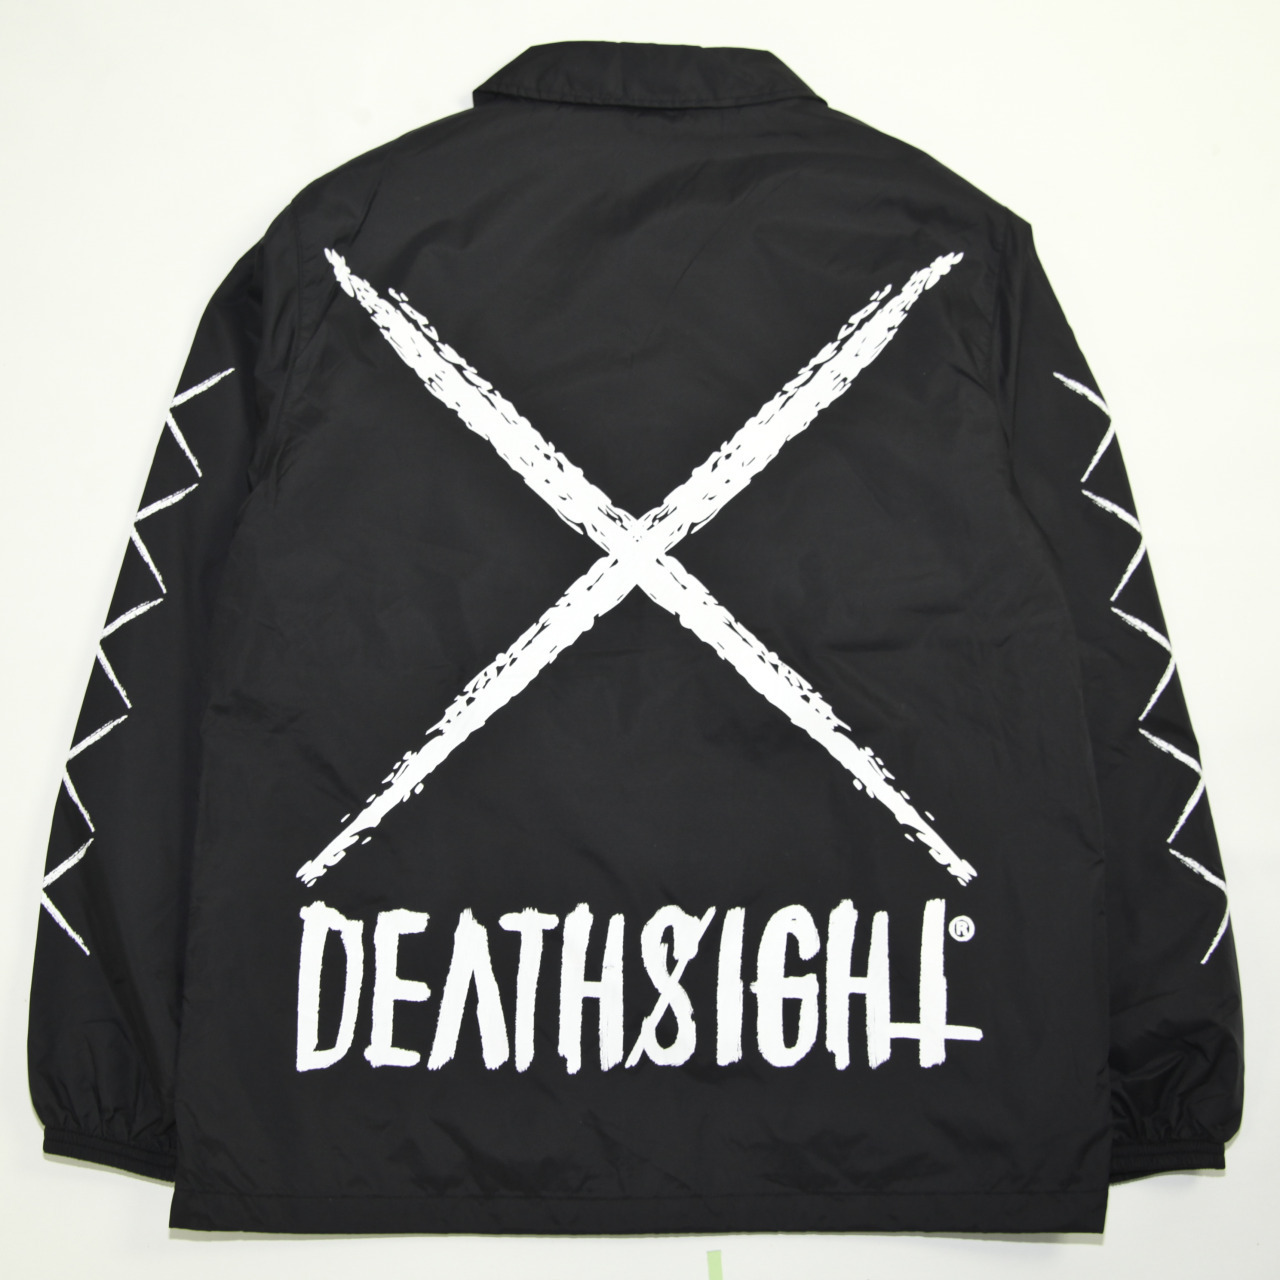 deathsight C JKT / BLACK - 画像2